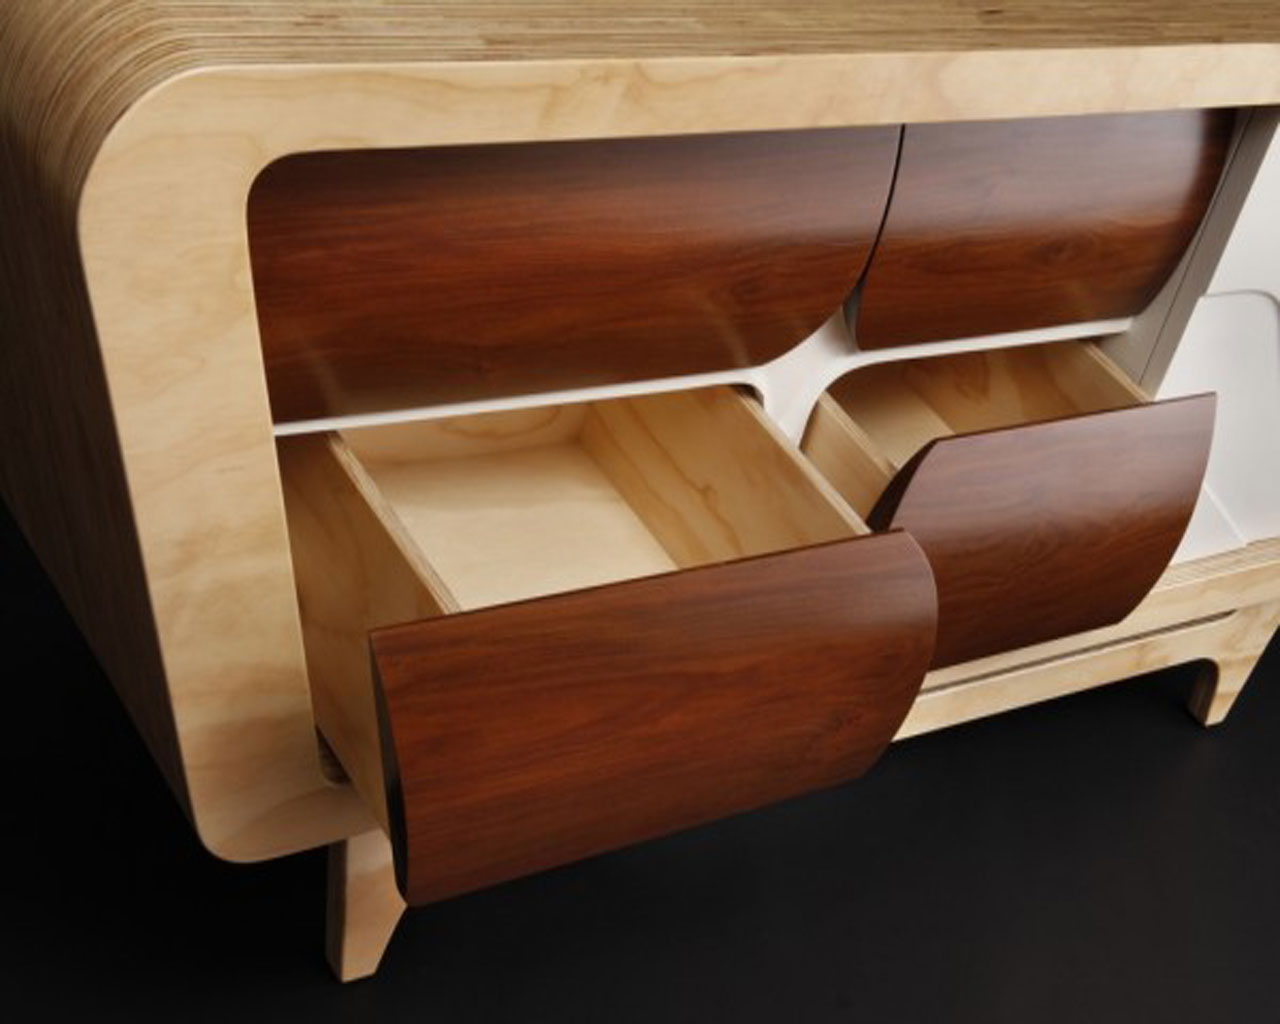 contemporary furniture designs ideas ForFurniture Design Photo